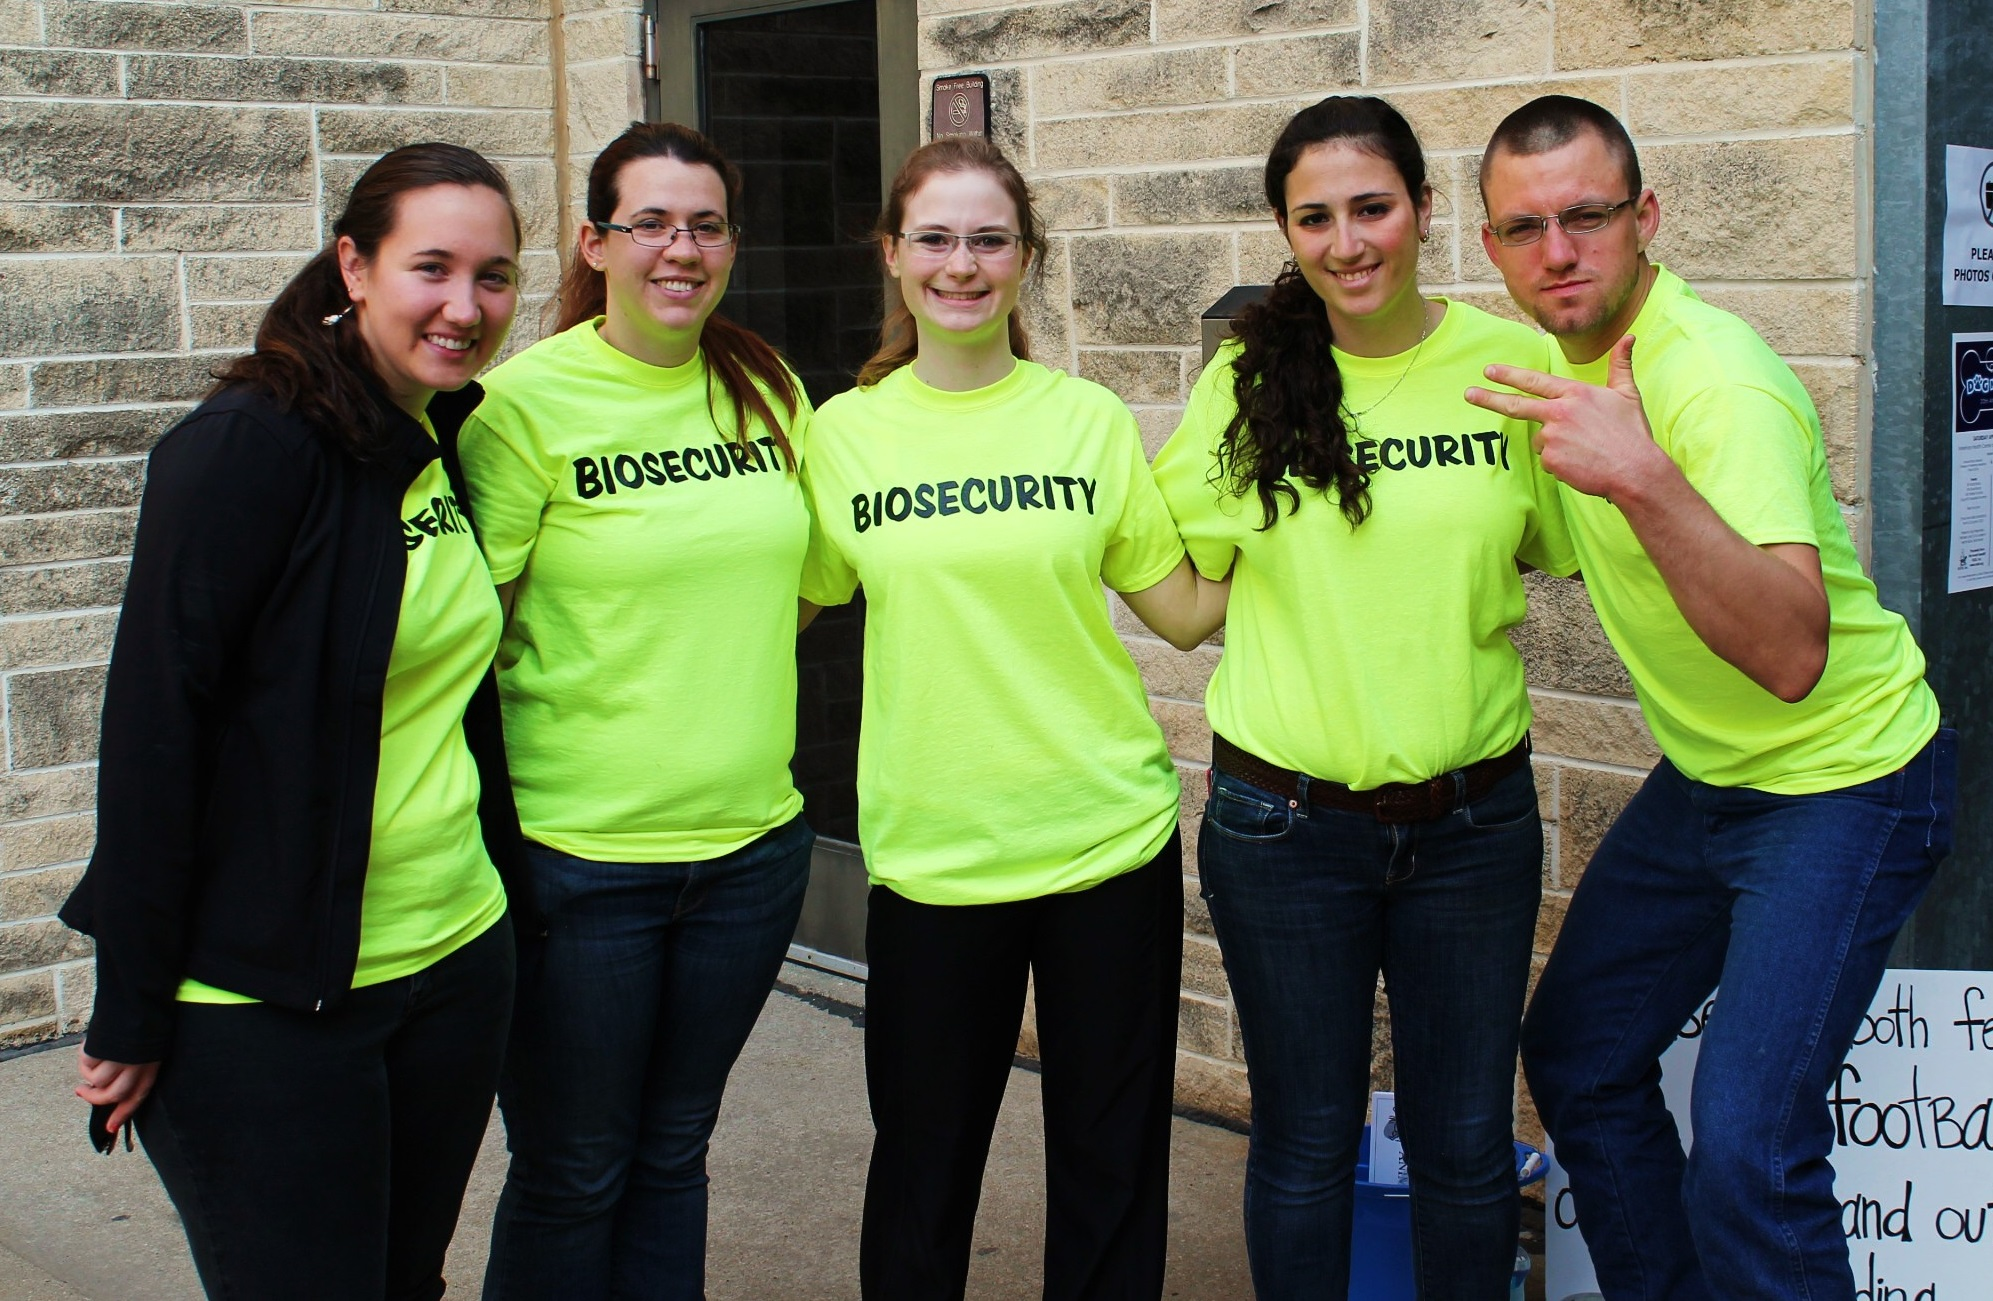 Custom T Shirts For Biosecurity For Your Safety Shirt